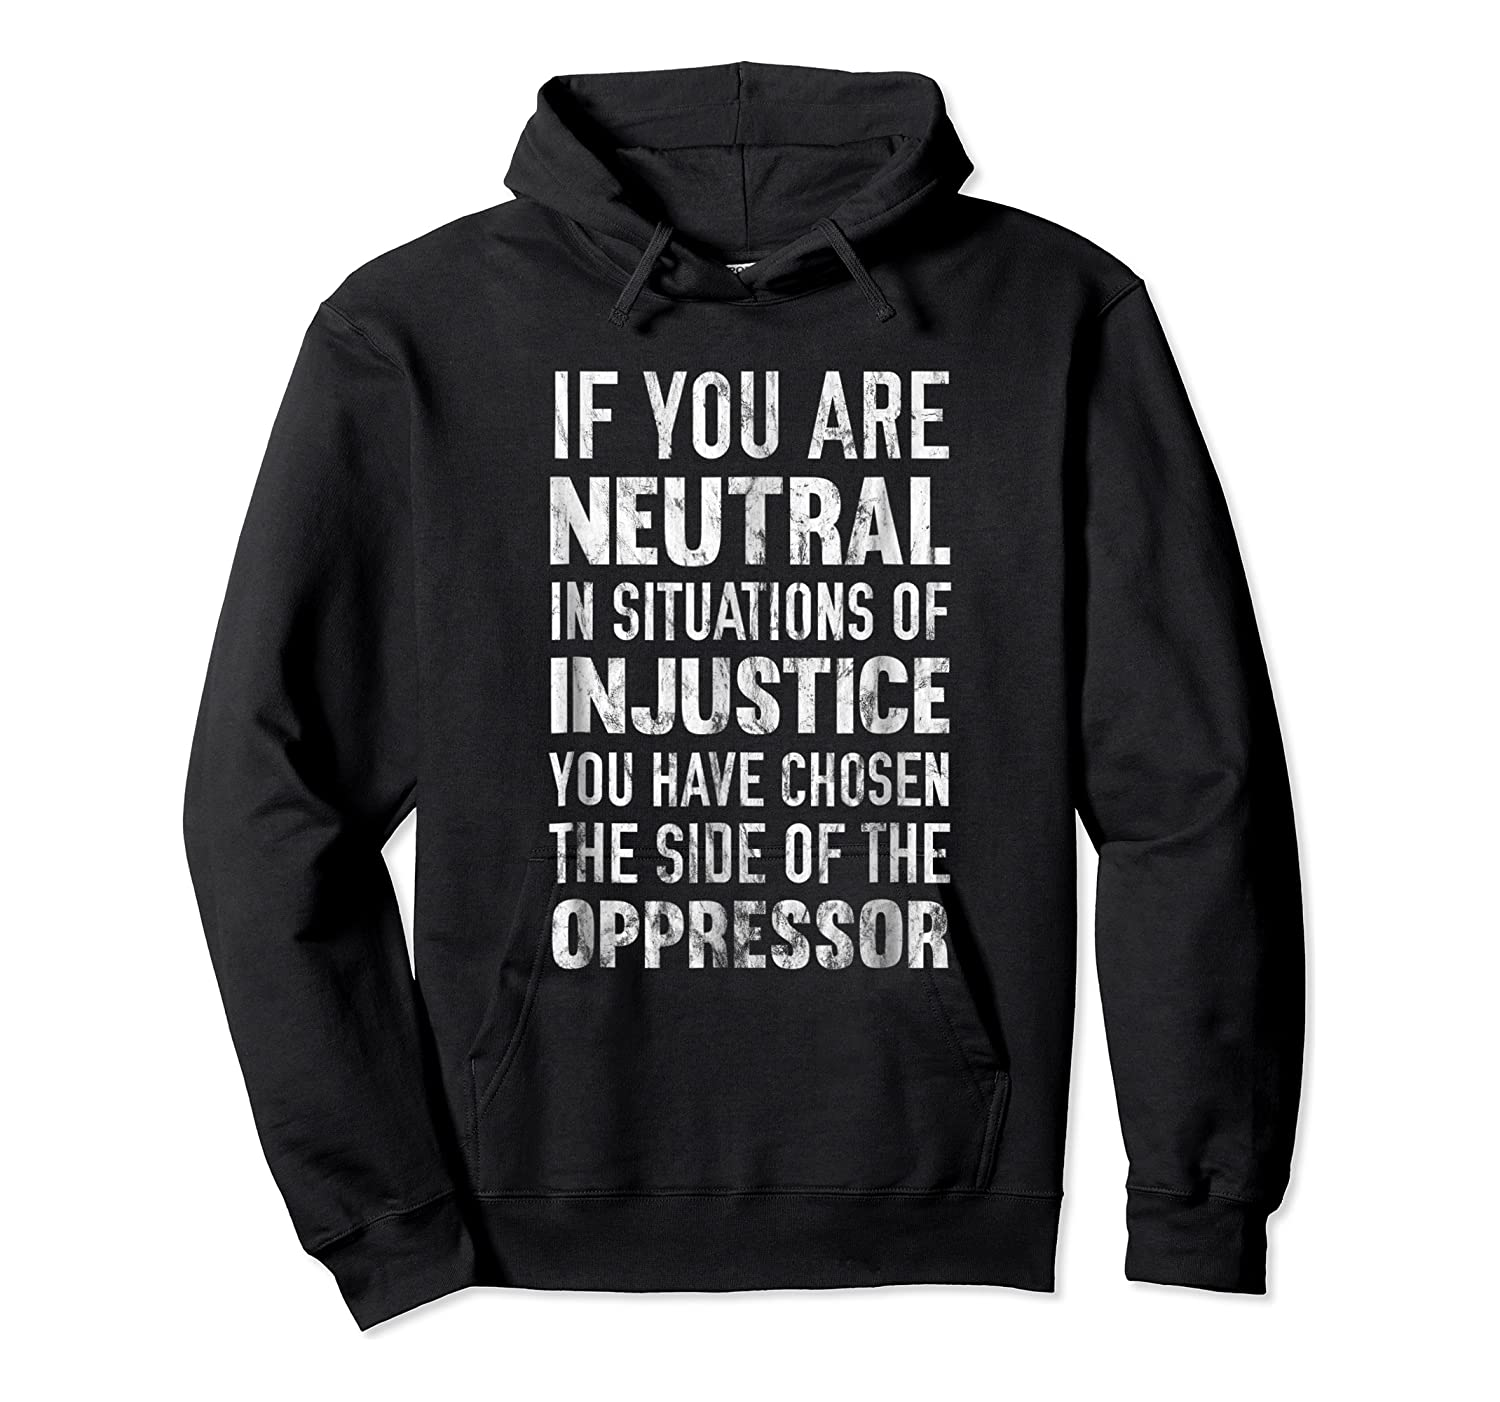 If You Are Neutral In Situations Injustice Oppressor Shirts Unisex Pullover Hoodie